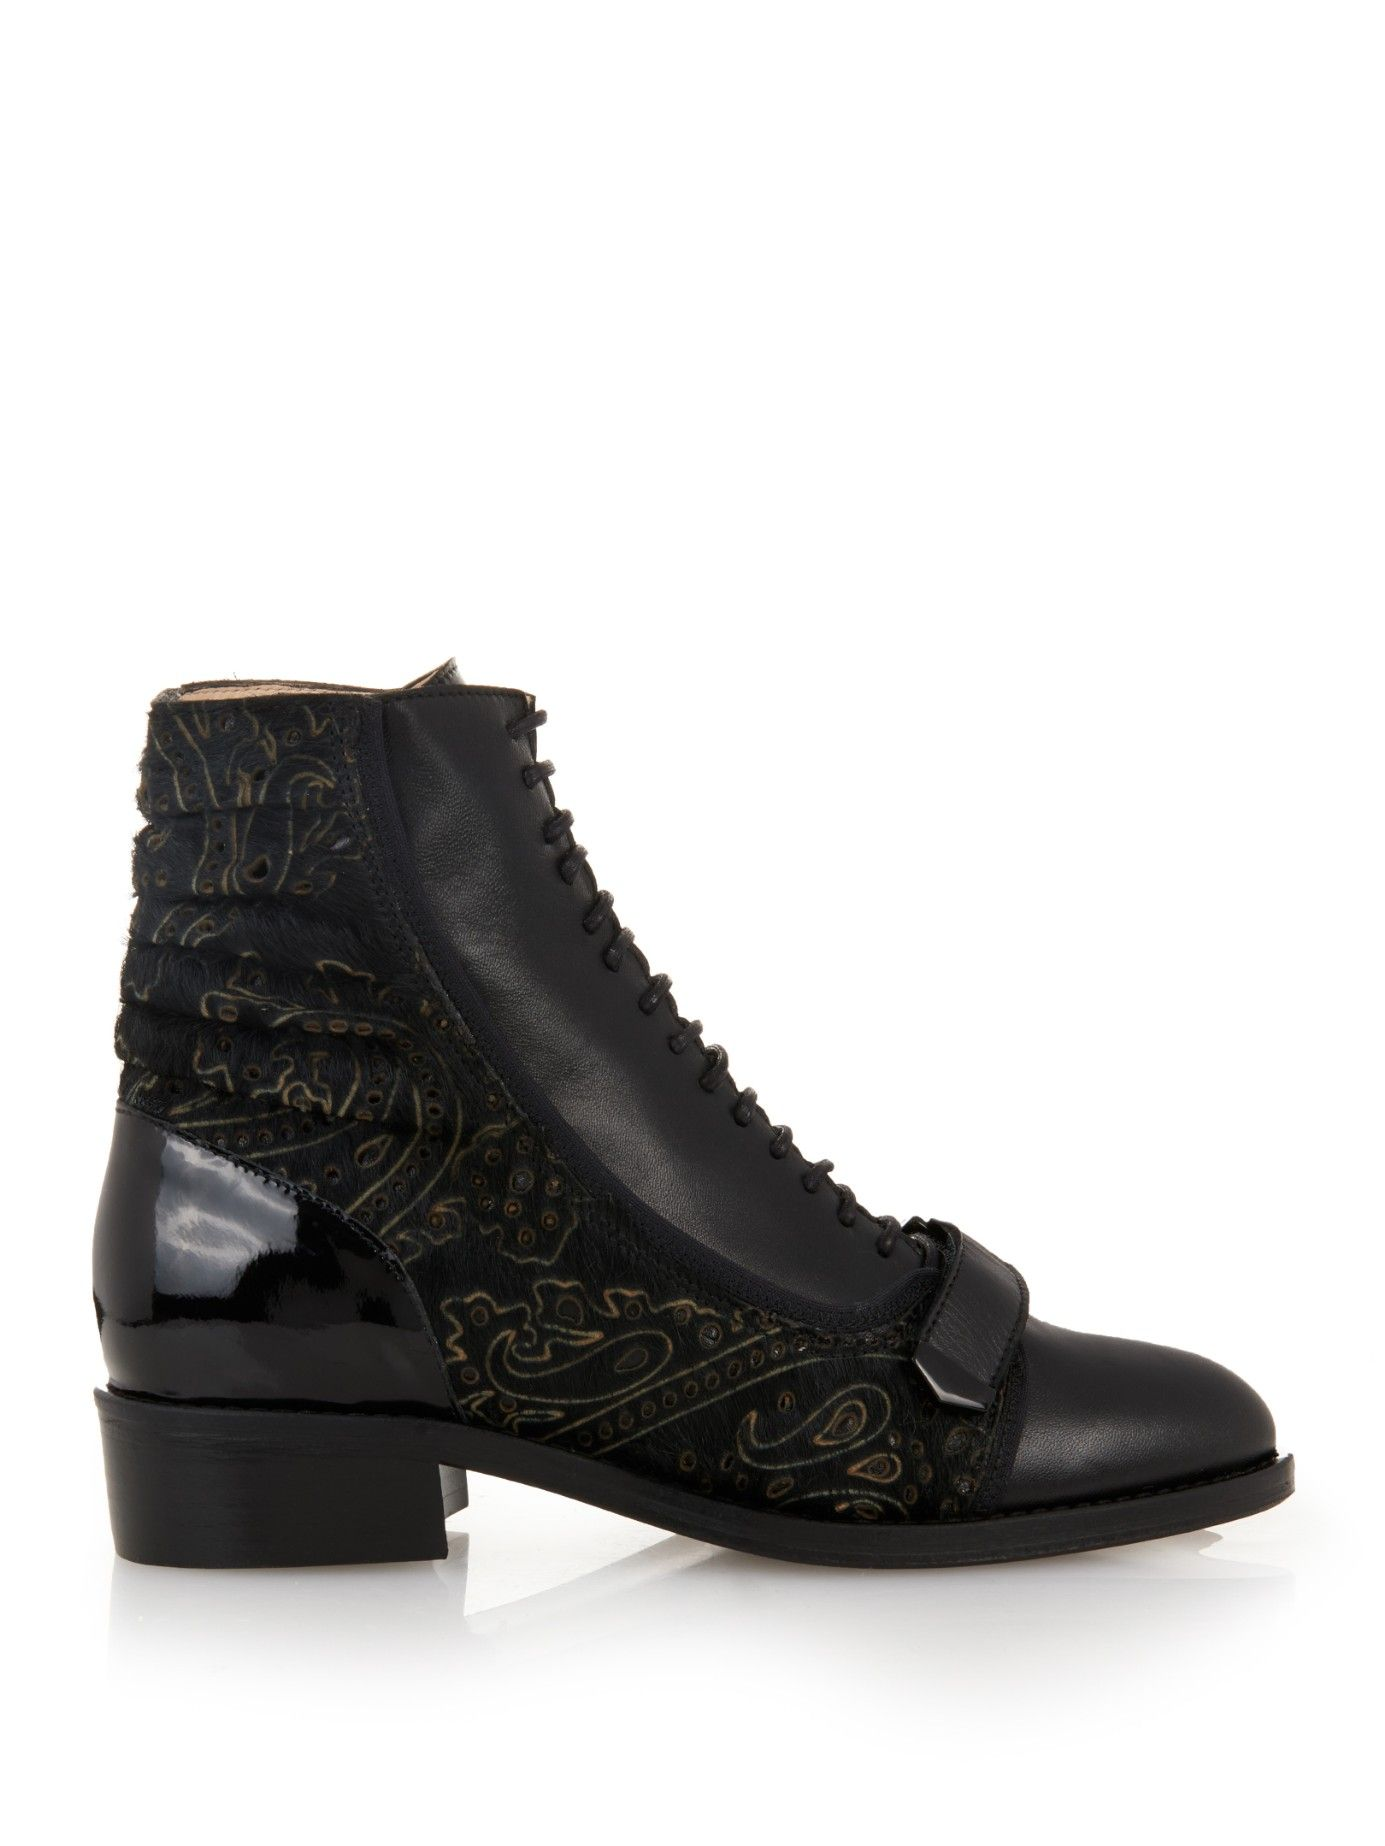 Preen by Thornton Bregazzi Preen Pointed-Toe Ankle Boots 2014 cheap price cheap sale with credit card caKYQ